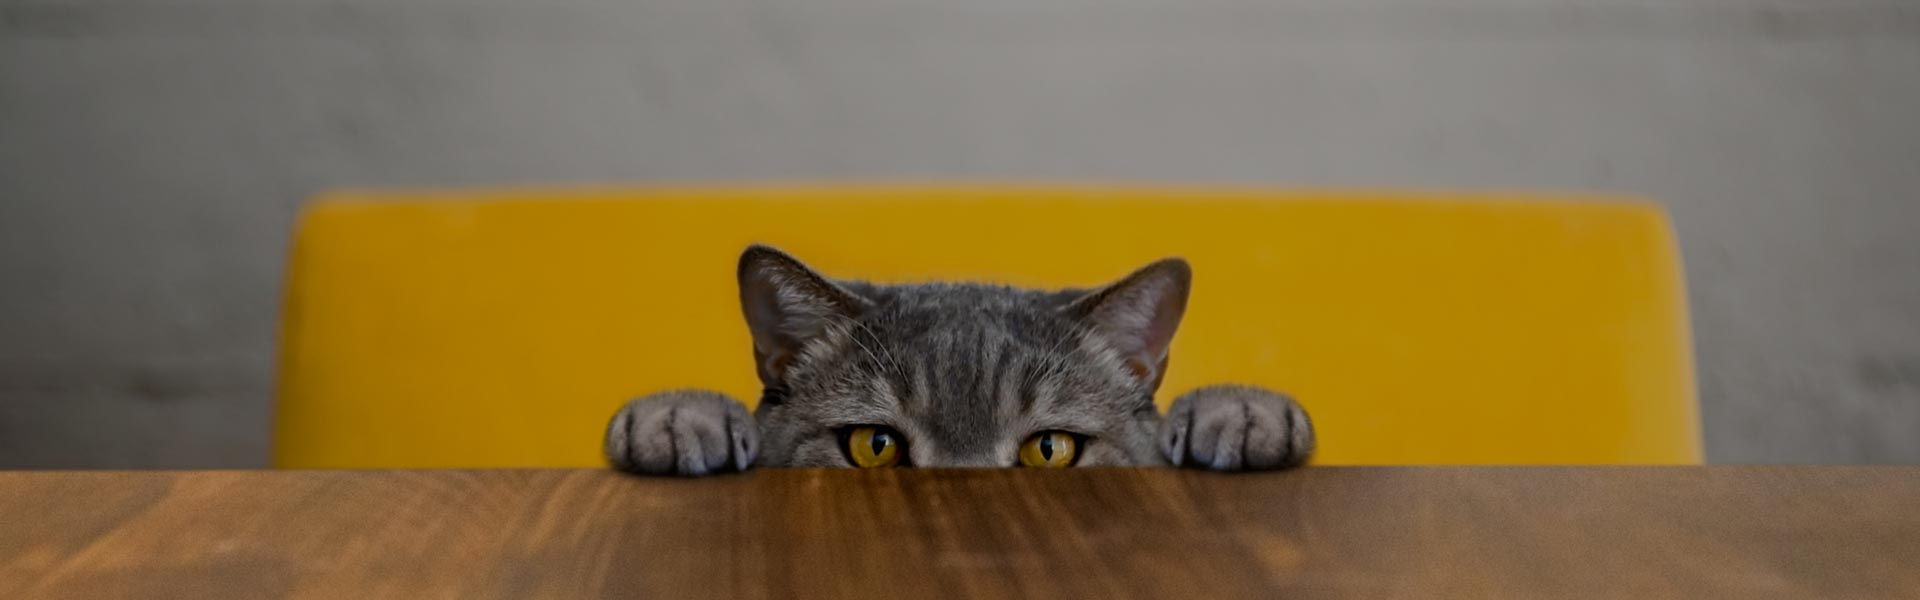 grey cat on yellow chair peeping over a table